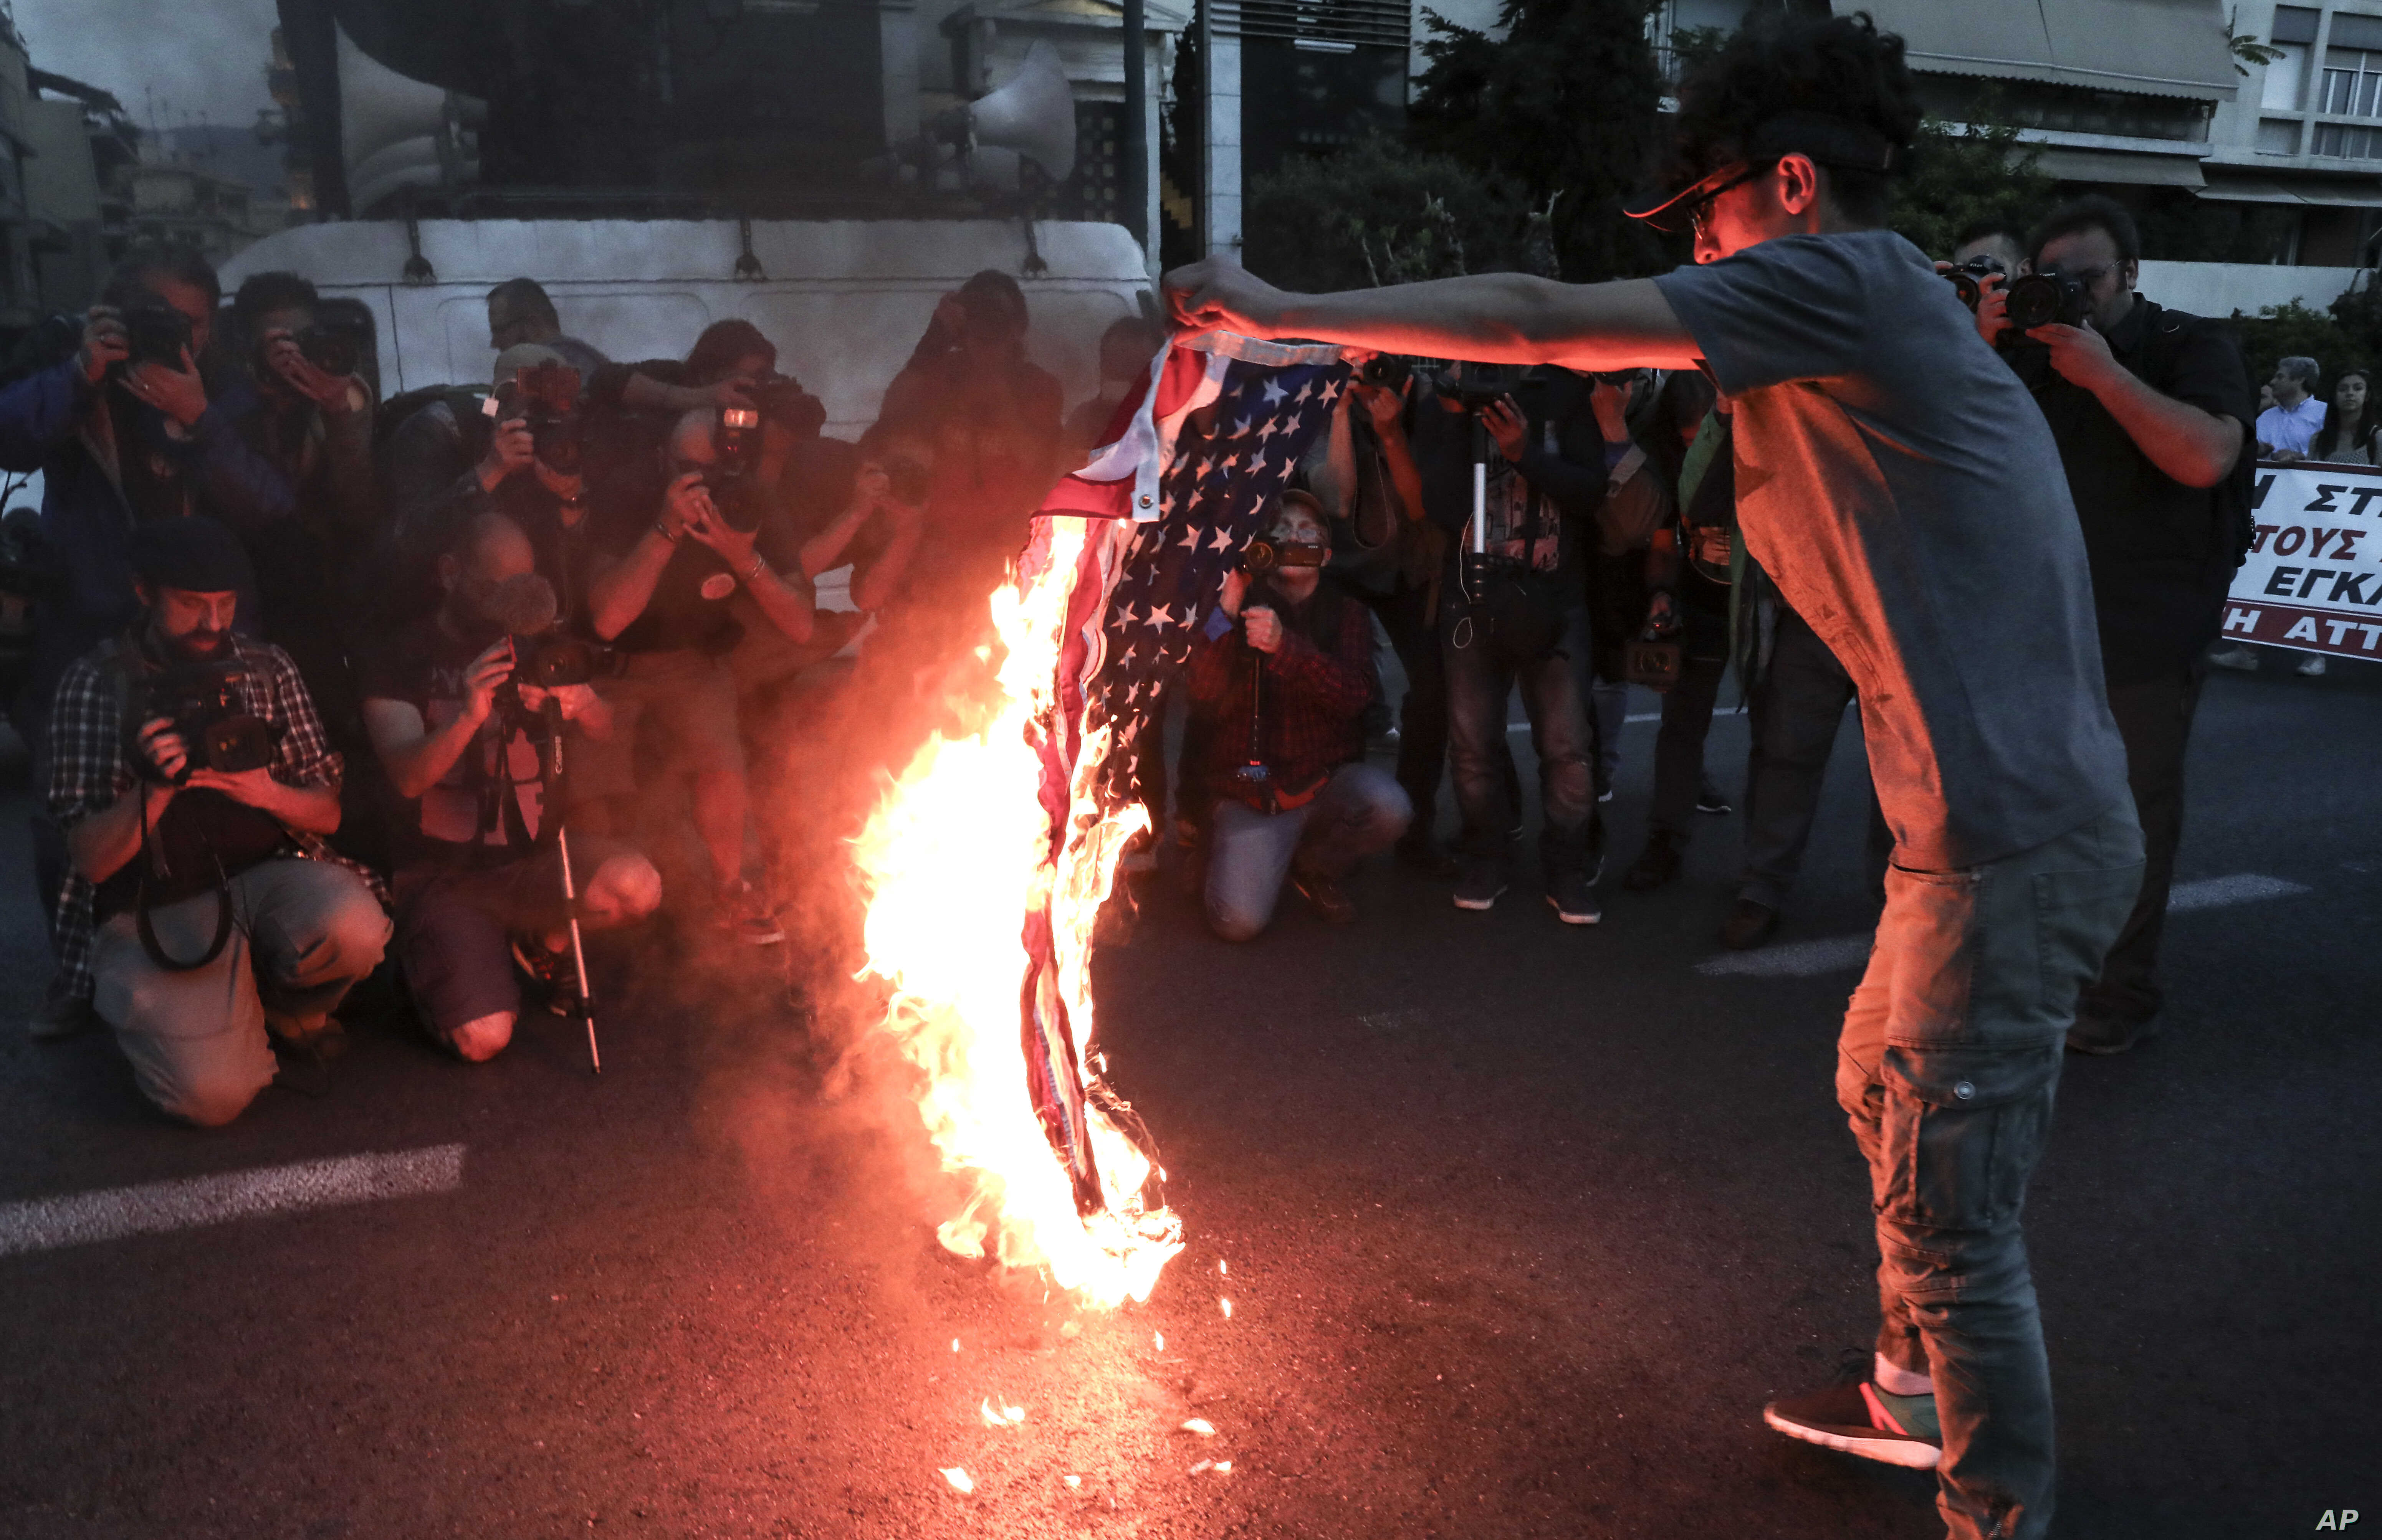 A protester holds a burning U.S. flag during a rally outside the U.S. embassy in Athens, Saturday, April 14, 2018.